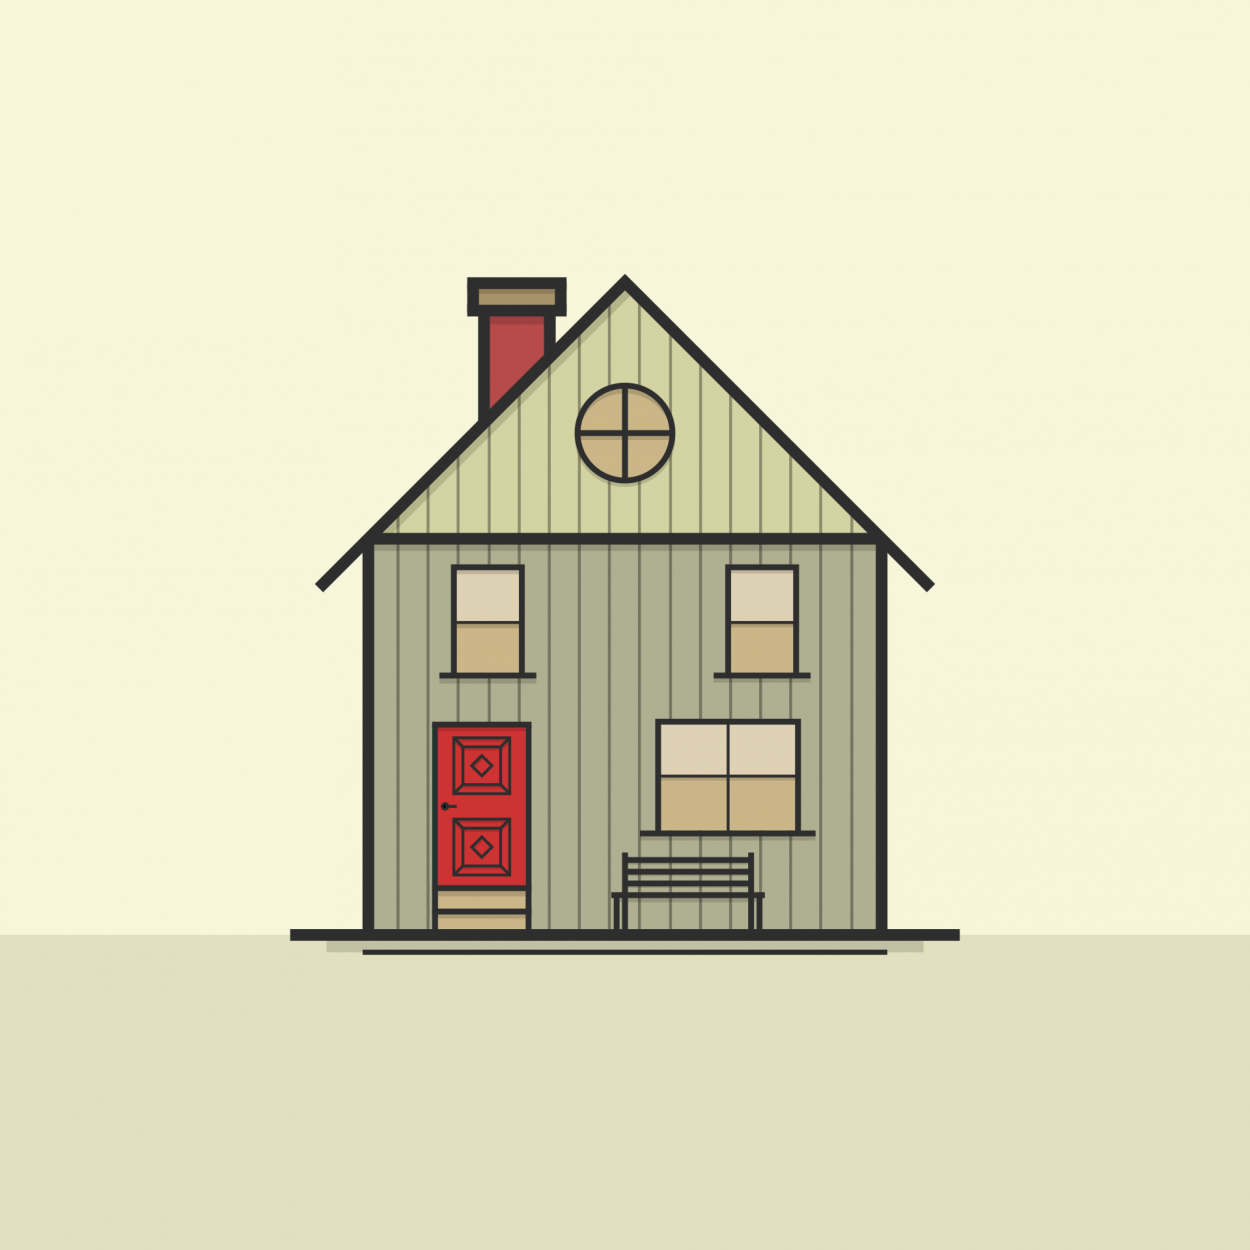 house-2492054.png